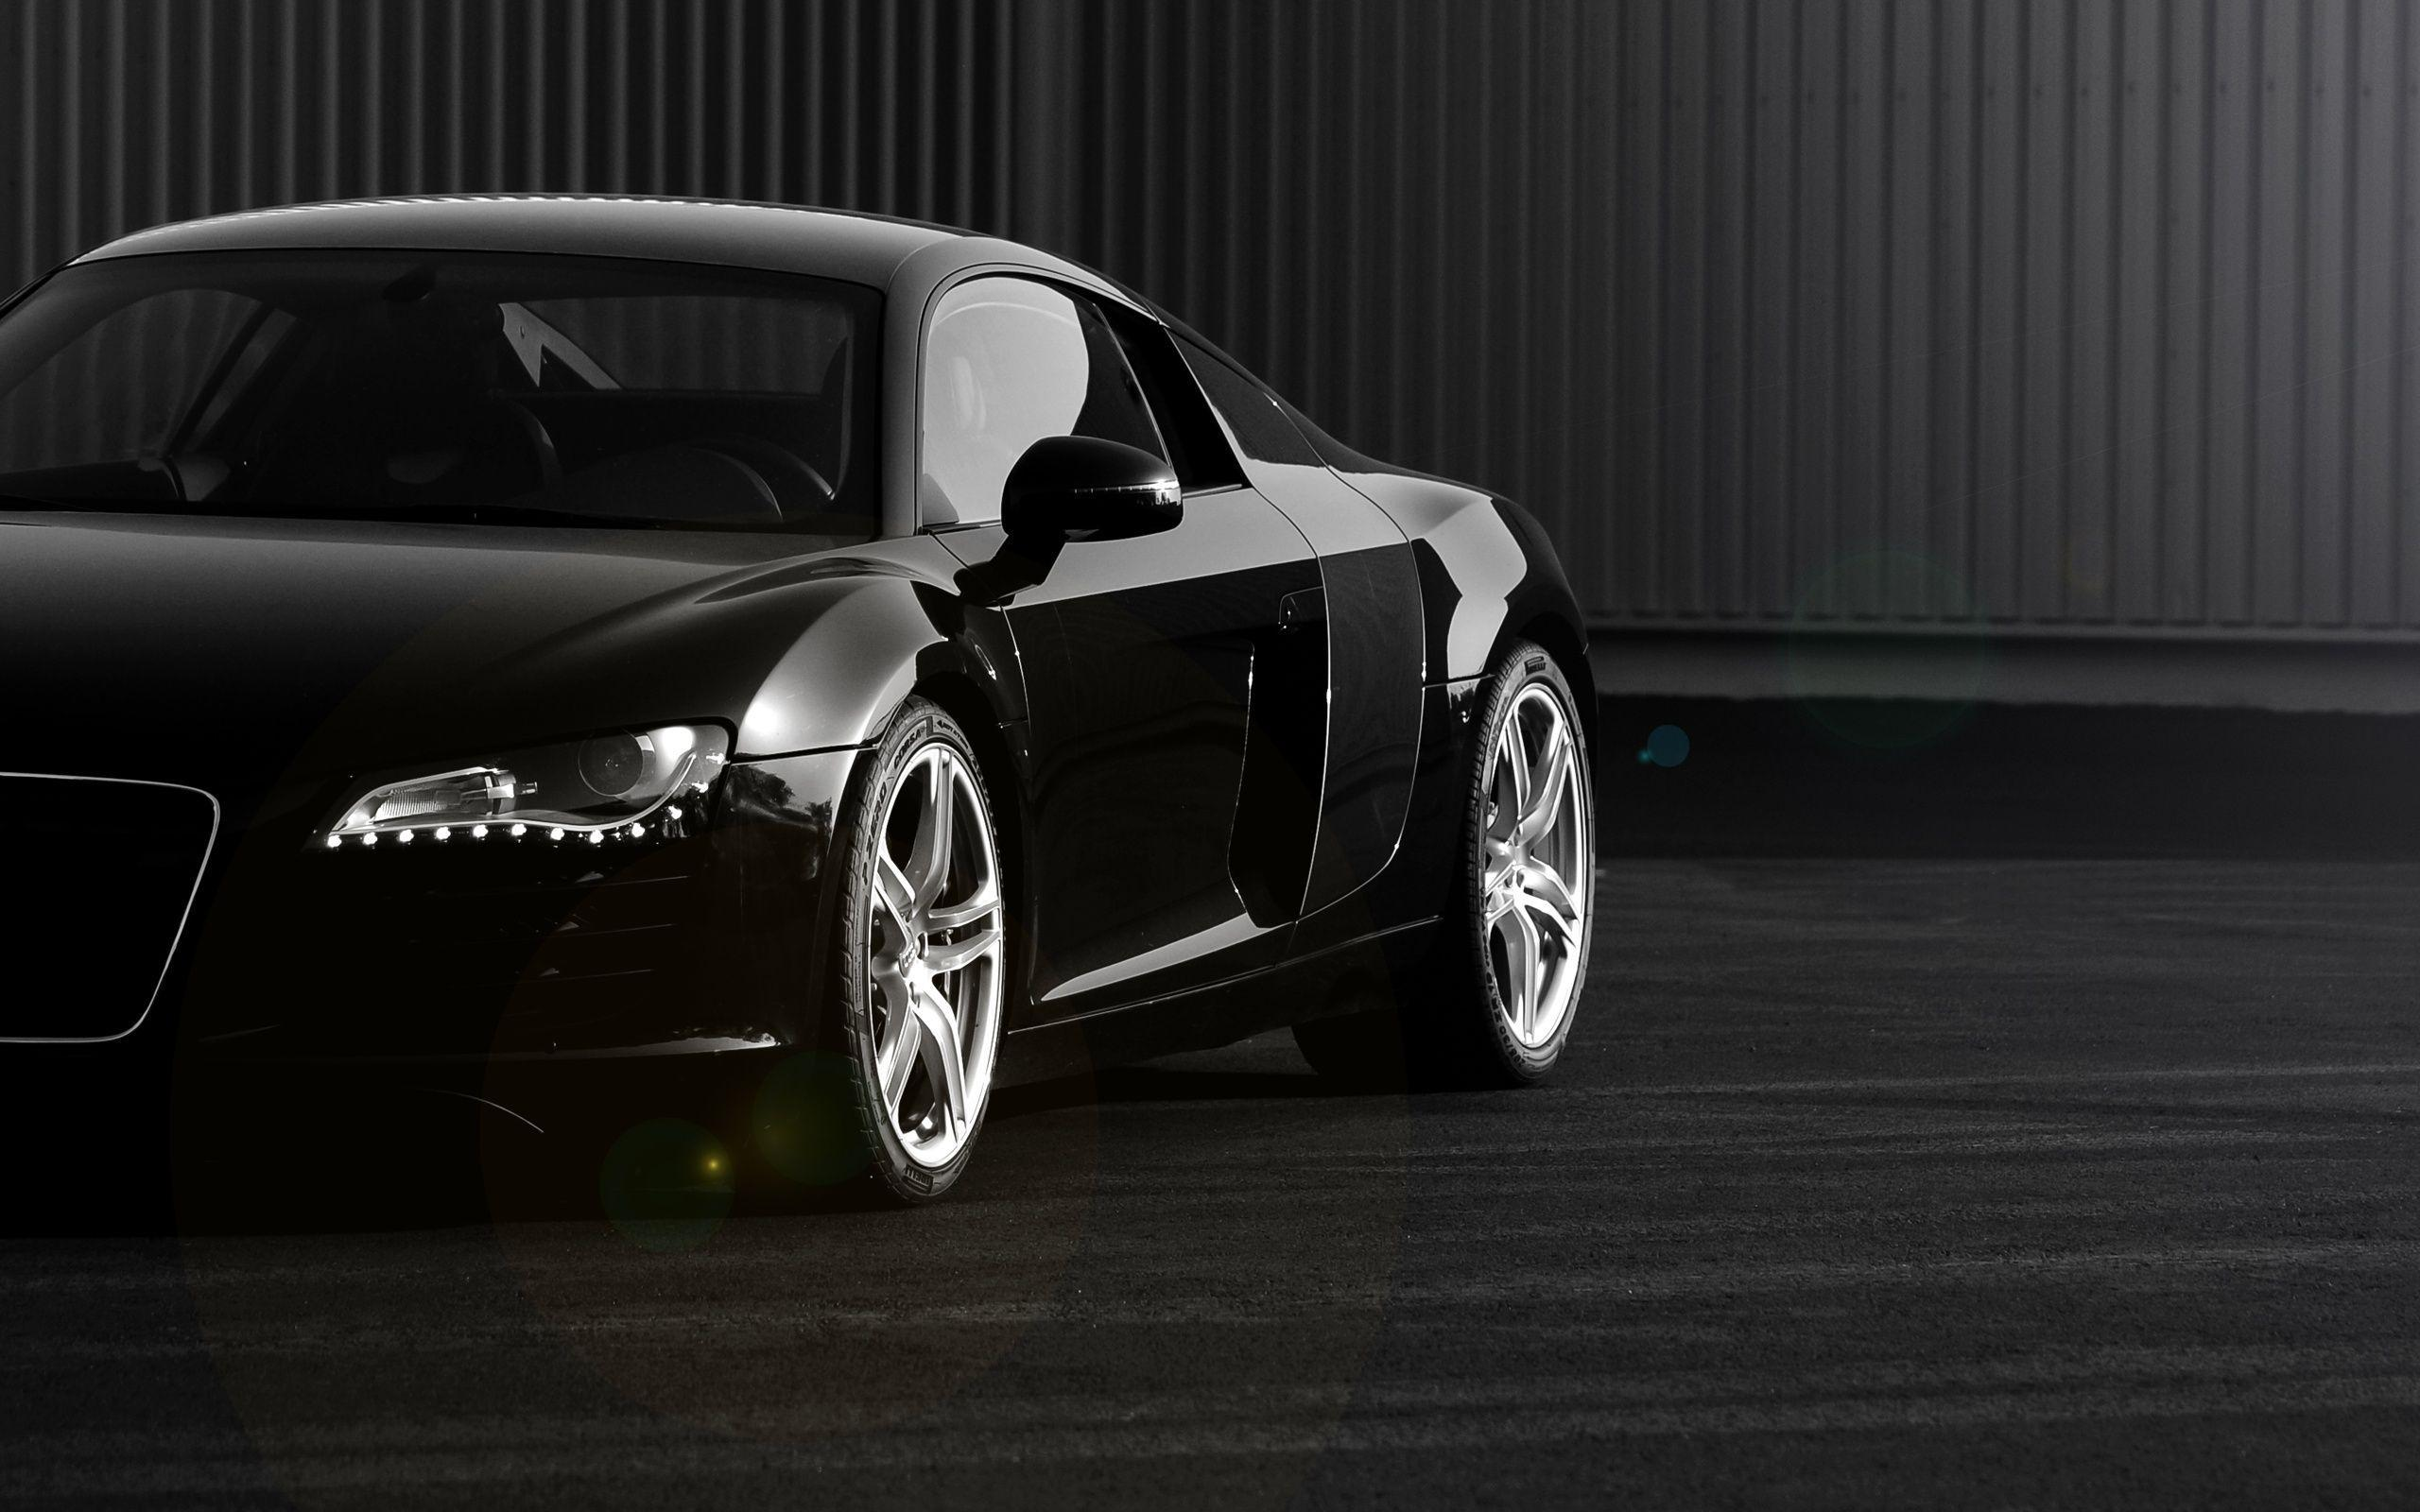 Black Audi Backgrounds | HD Wallpapers, Backgrounds, Images, Art ...